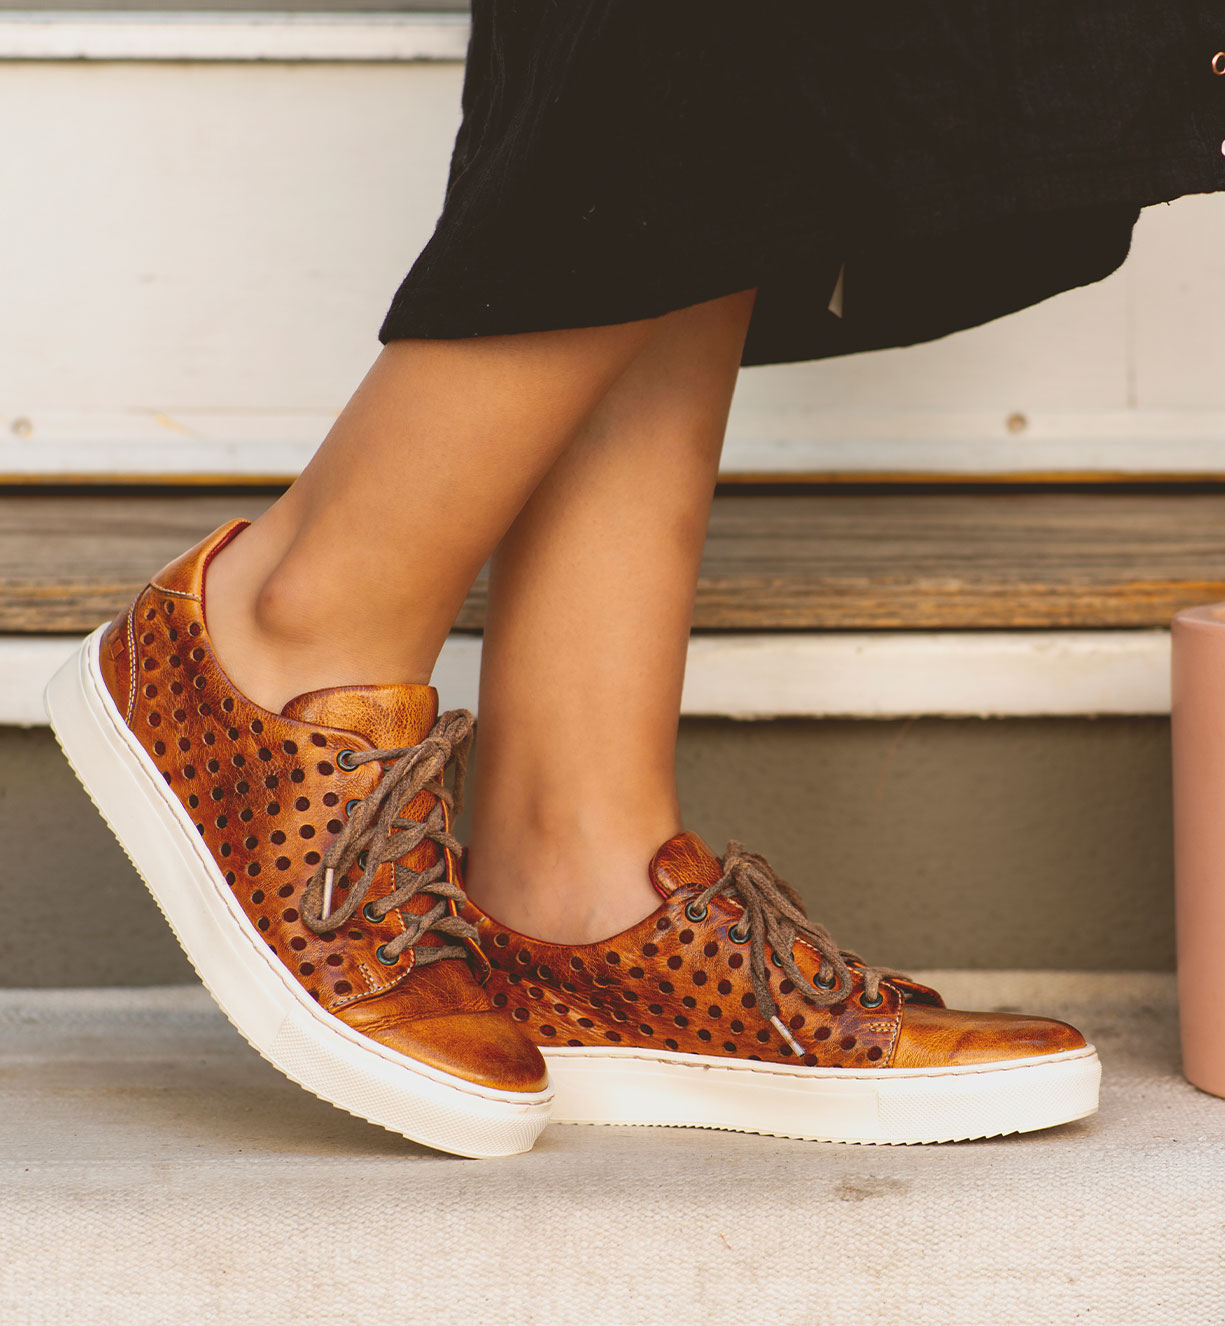 Women feet featuring classic sneakers high top shoes fall 2021